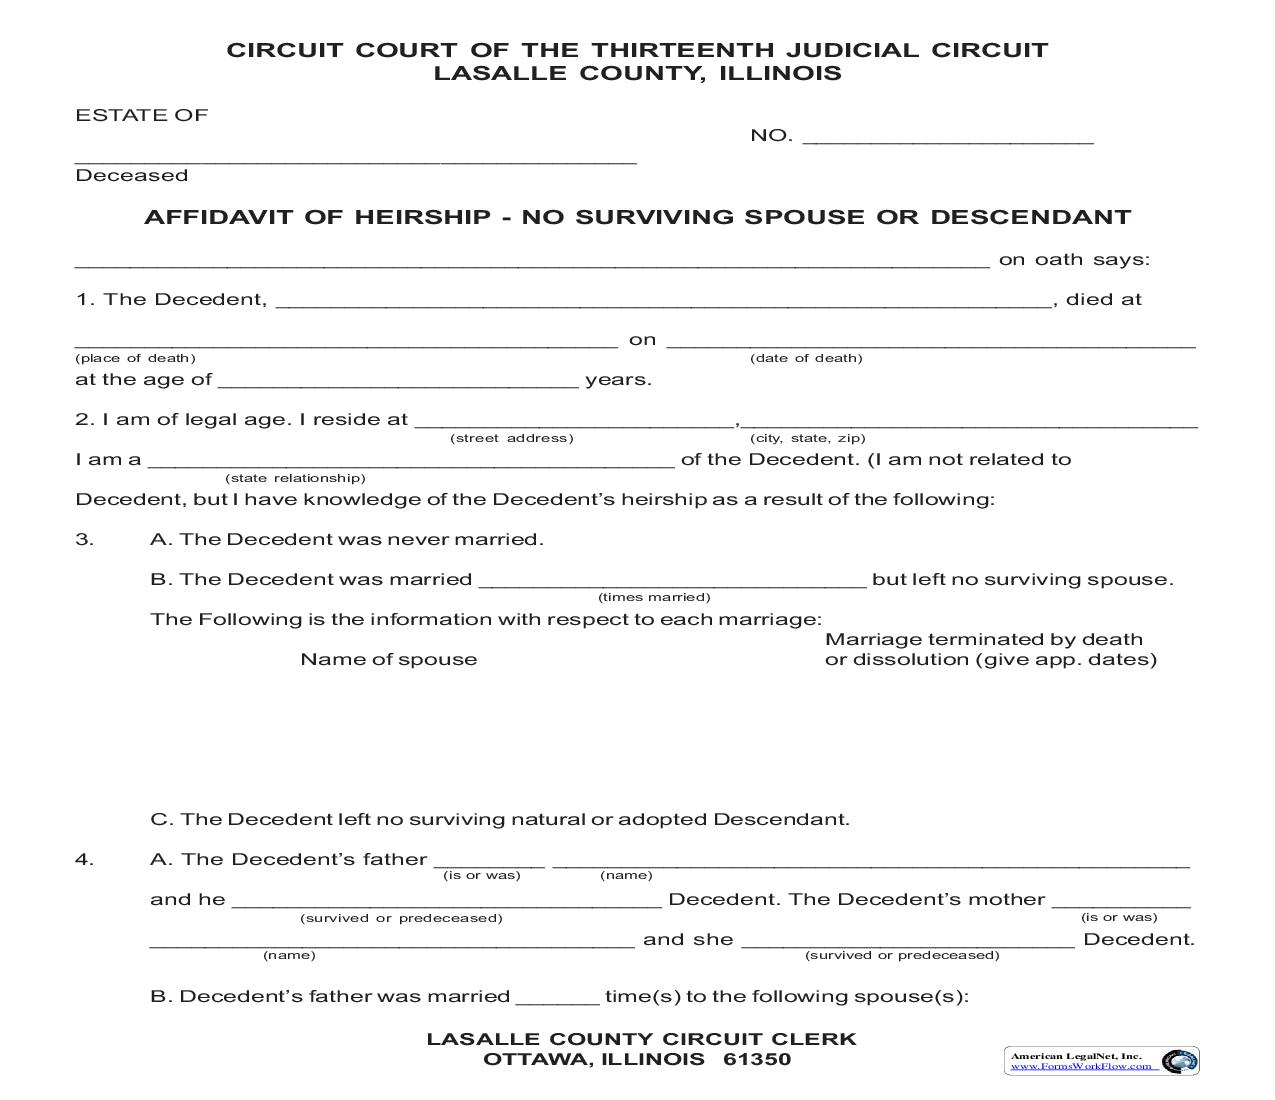 Affidavit Of Heirship - No Surviving Spouse Or Descendant | Pdf Fpdf Doc Docx | Illinois